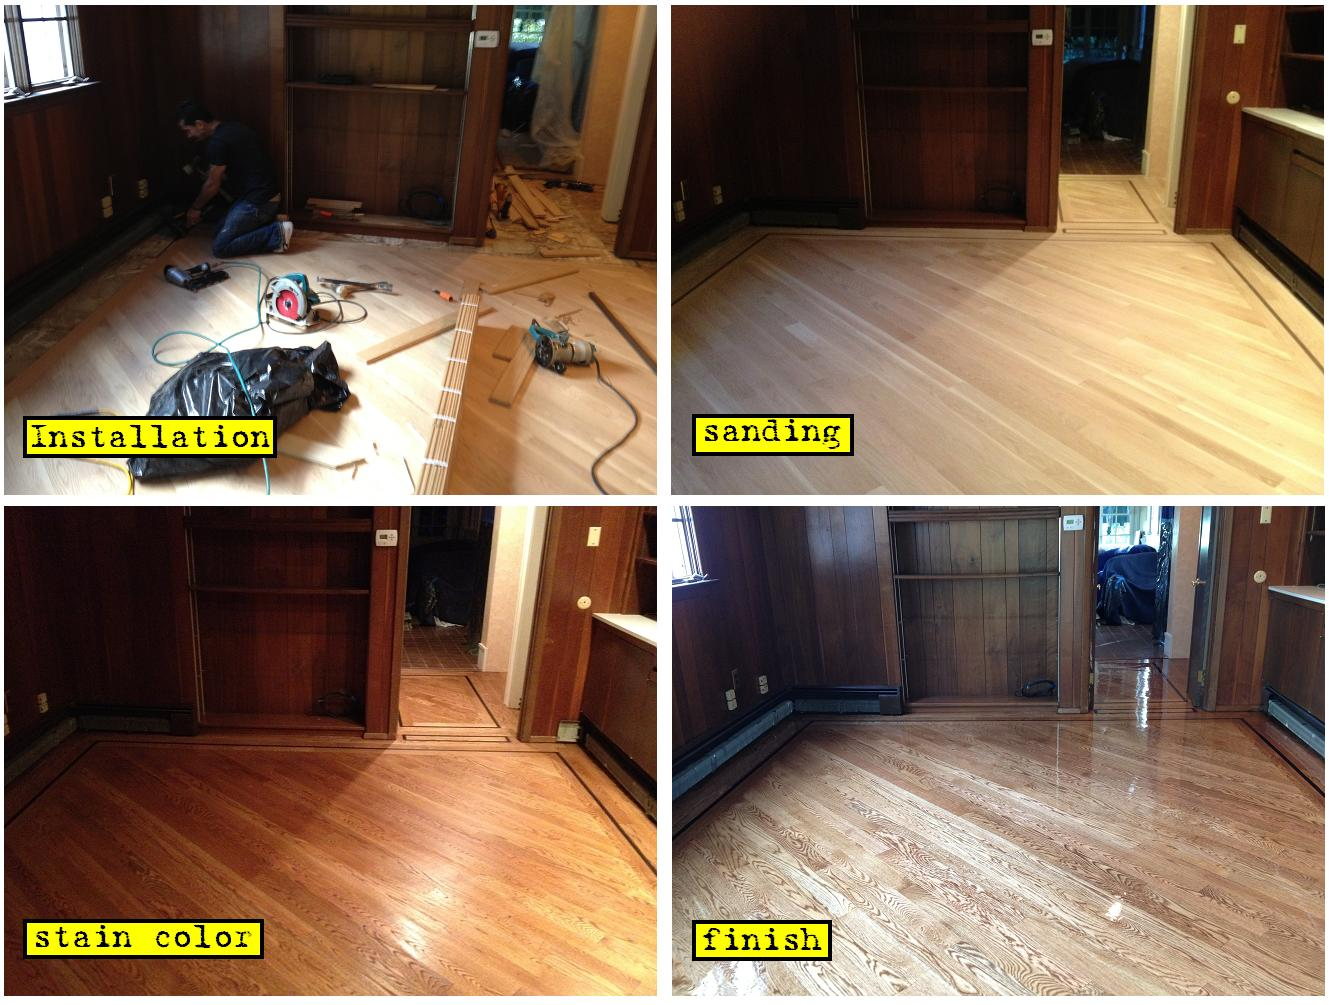 Jp wood flooring floors 732 693 5557 new jersey usa for Floors floors floors nj